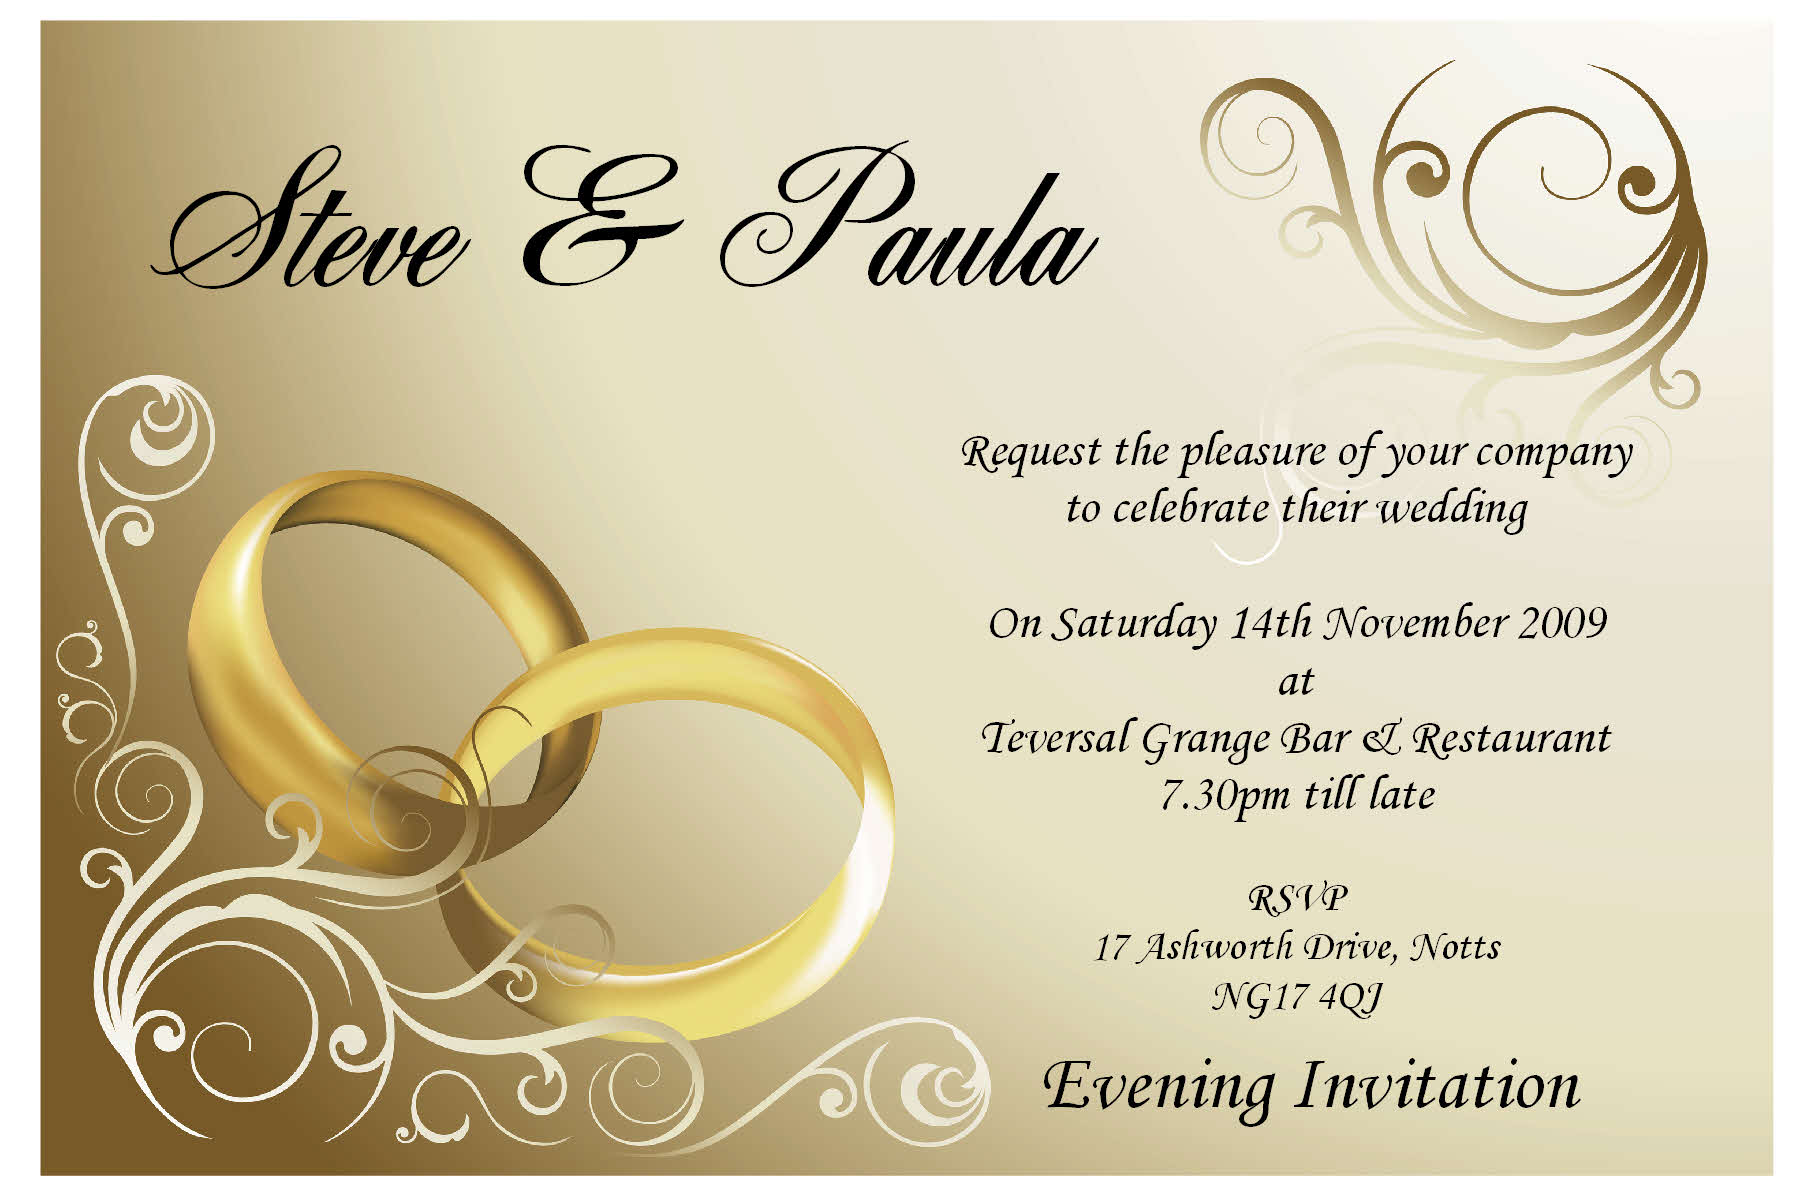 Wedding Invitation Picture: Wedding Invitations